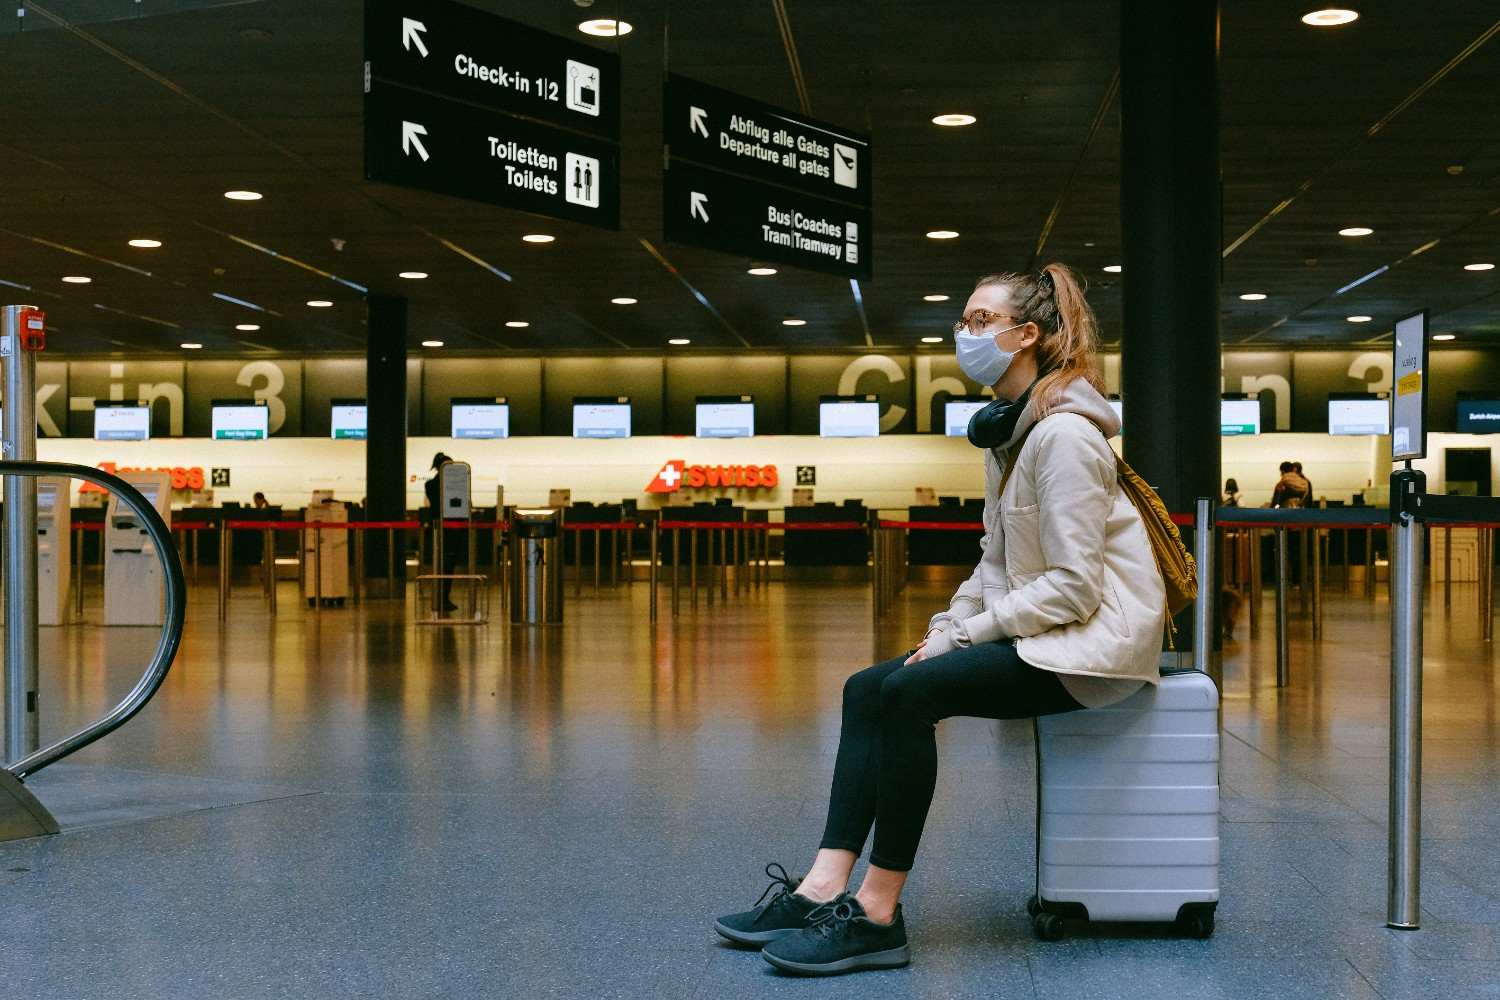 Woman sitting on a rolling suitcase in an airport wearing a face mask to travel in this new world